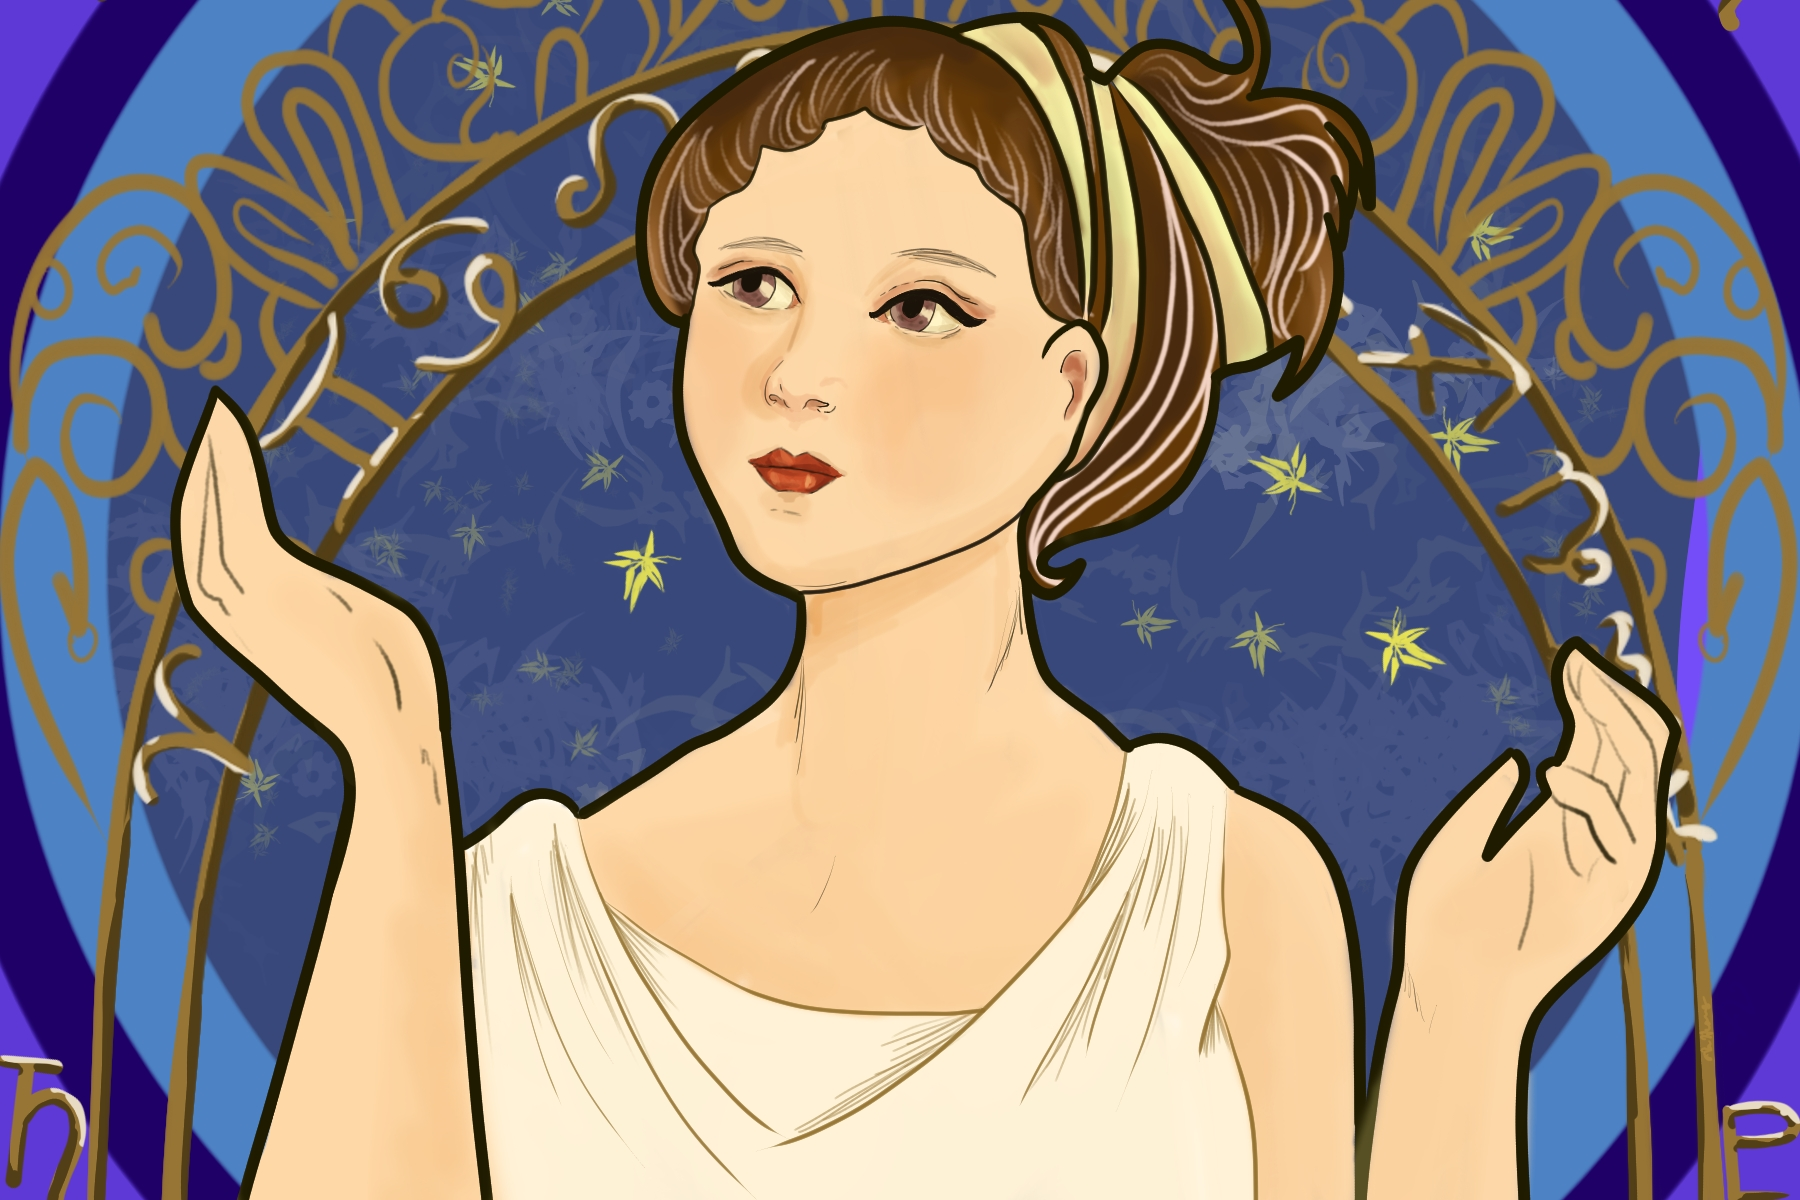 Illustration by Elizabeth Wong of a woman in a toga with a crown with signs of the Zodiac in an article about COVID-19